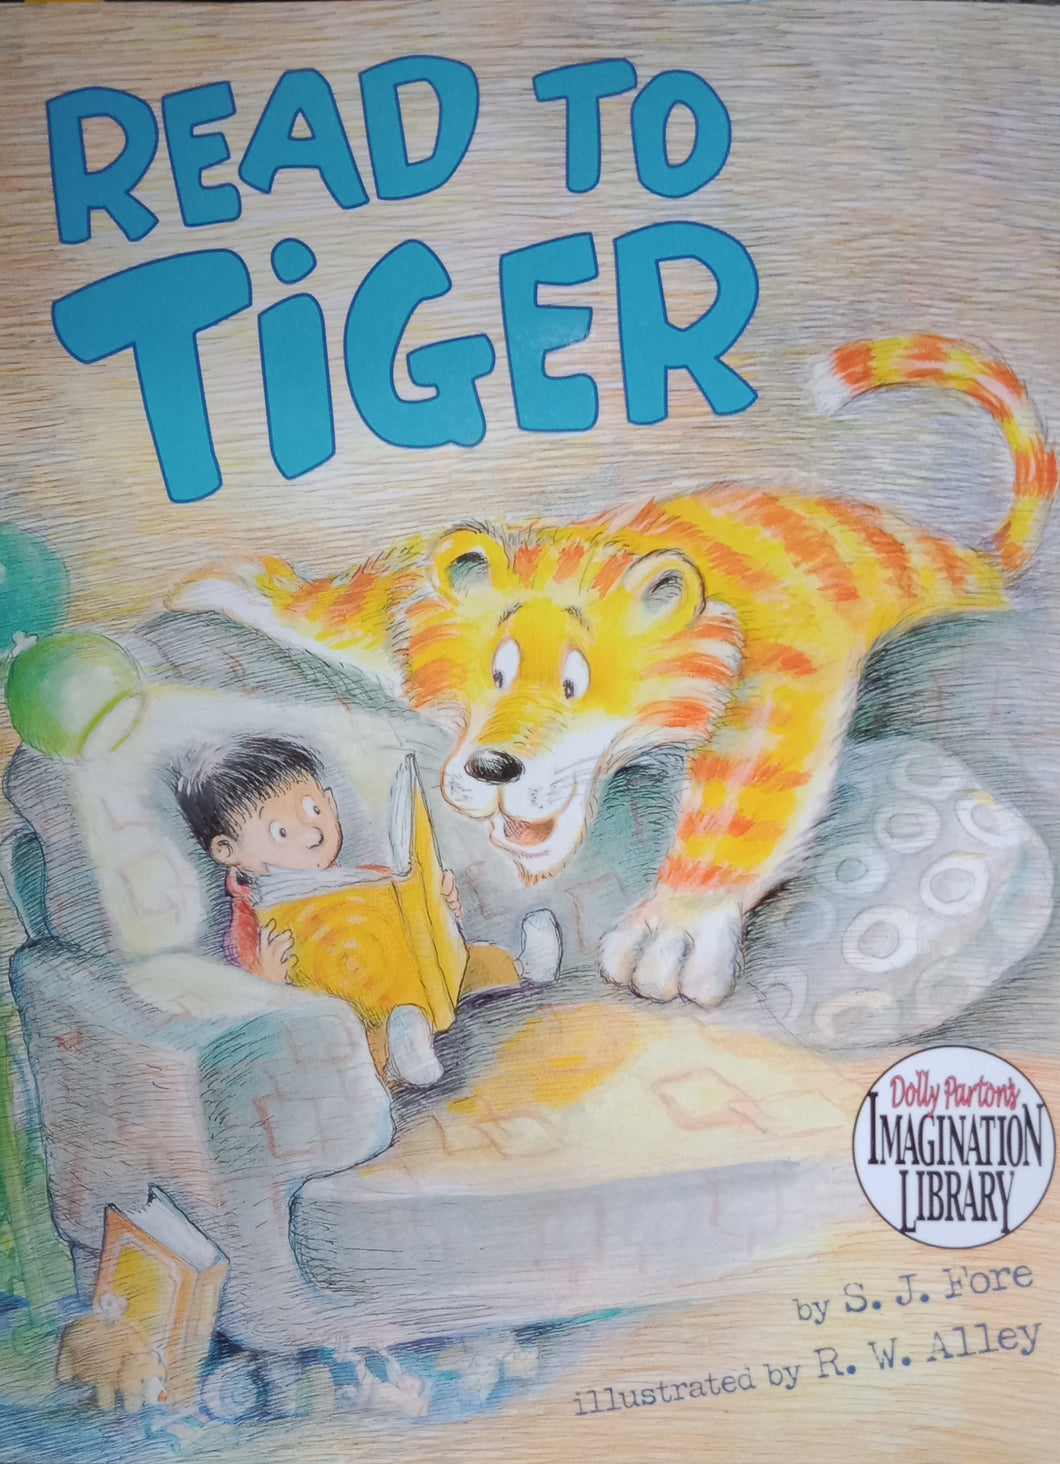 Read To Tiger by S.J. Fore